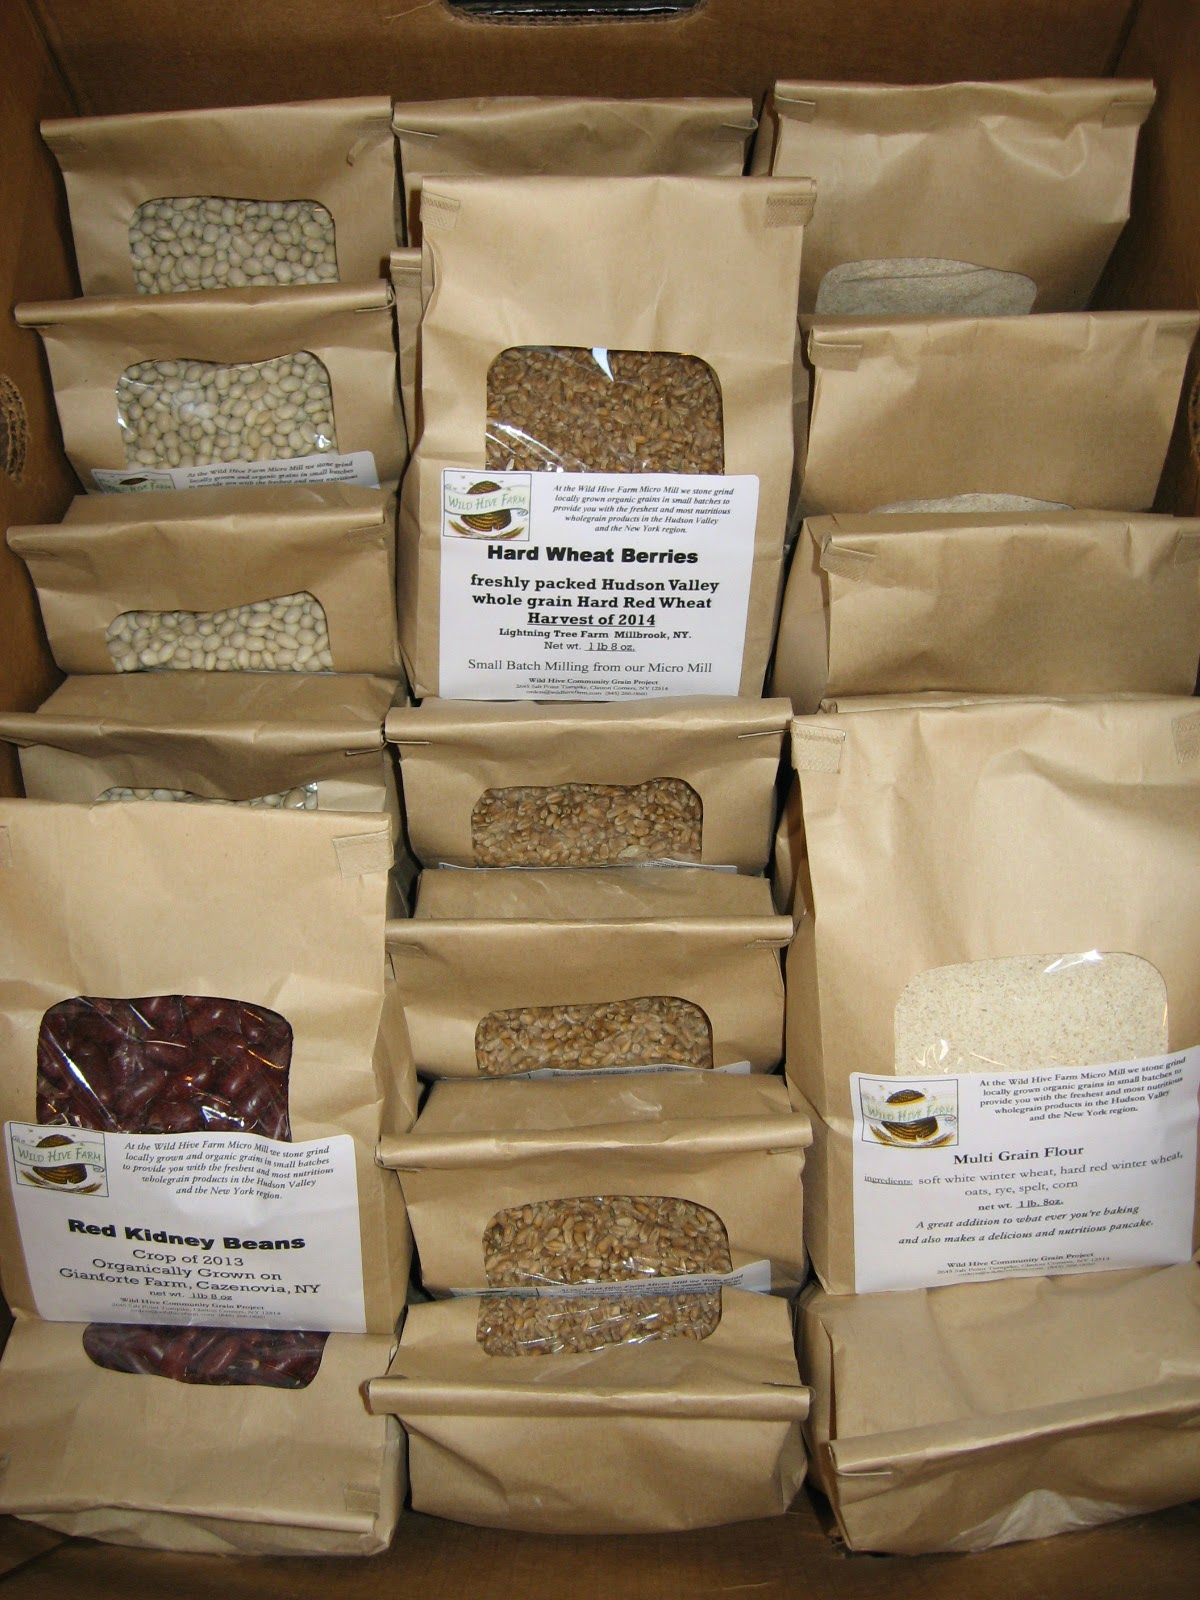 Wild Hive Farms grains and beans